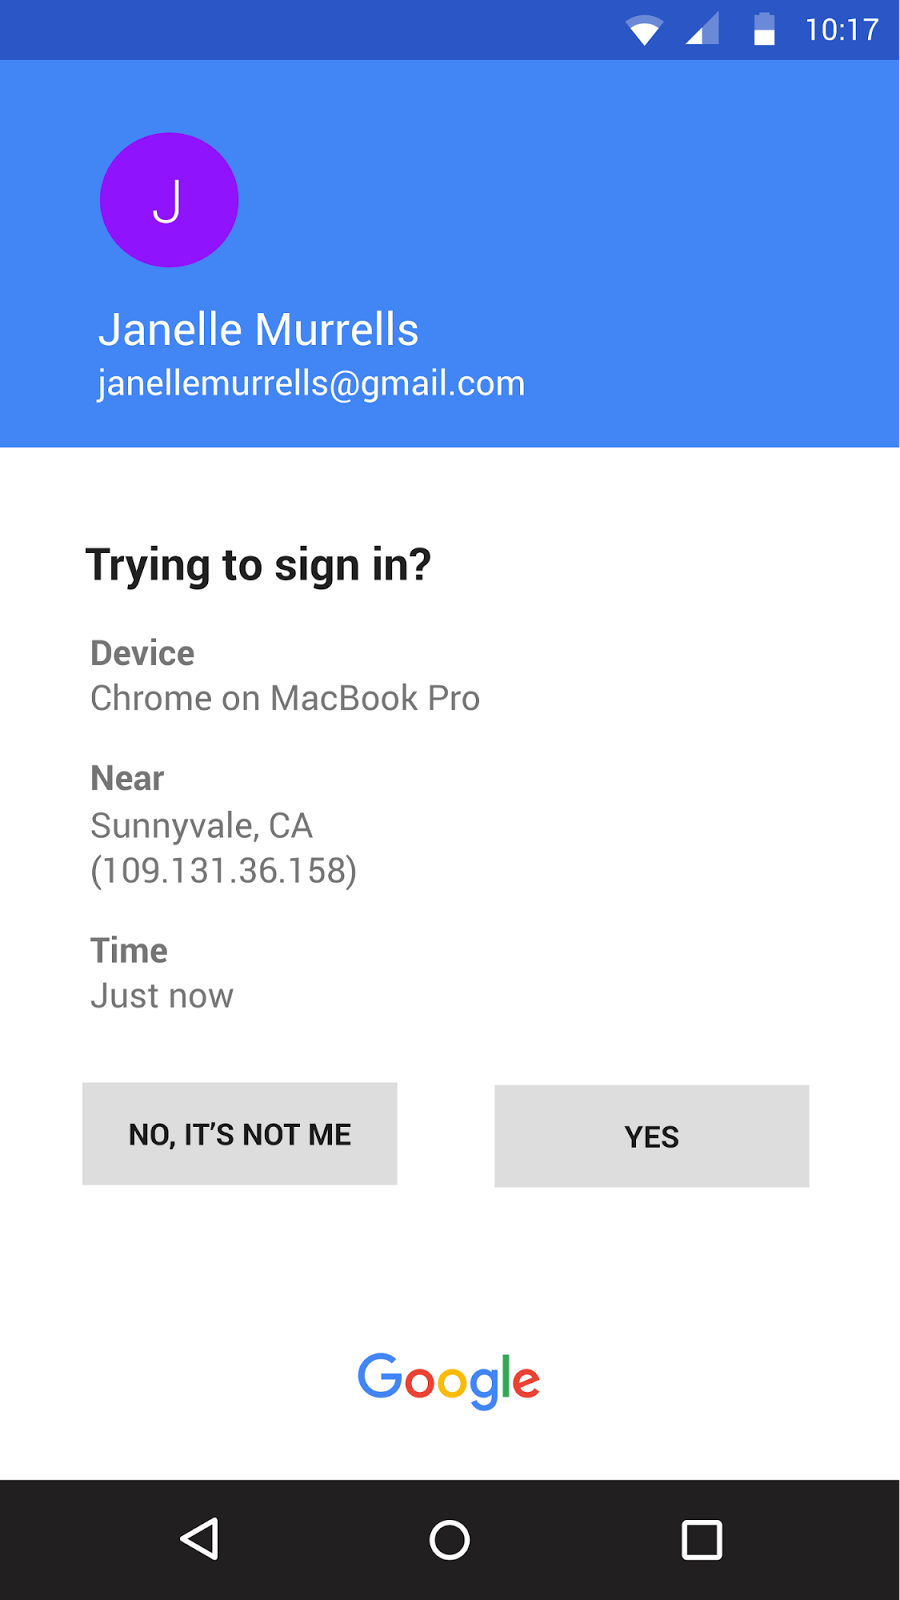 Starting Next Week, 2sv Sms Users Will See An Invitation To Try Google  Prompts When They Sign In The Invitation Will Give Users A Way To Preview  The New